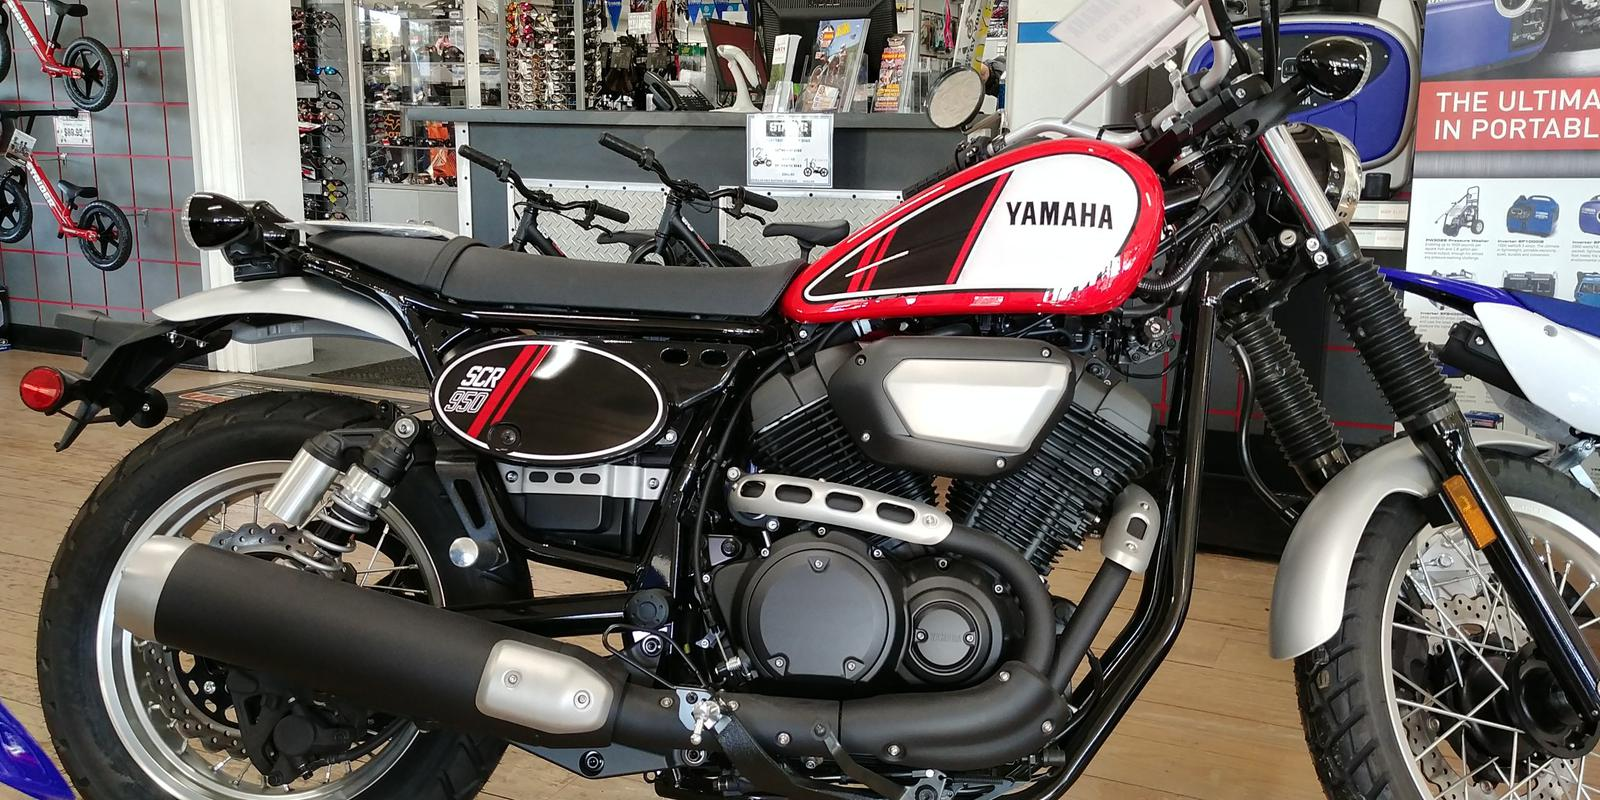 2017 Yamaha SCR950 for sale 39593